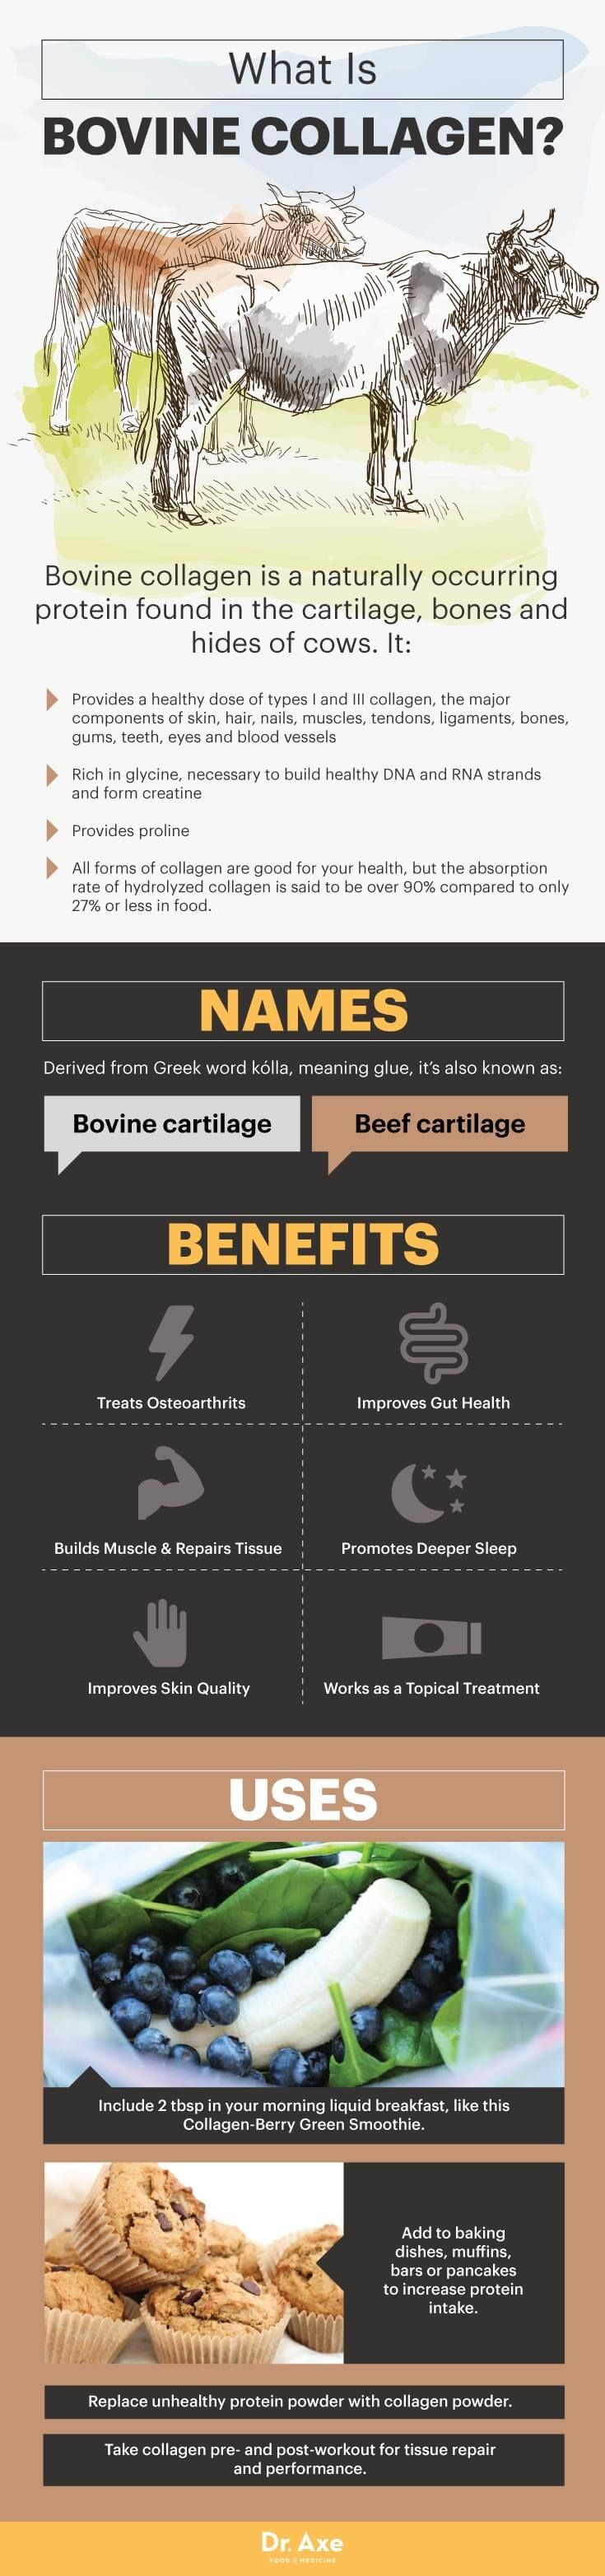 What is bovine collagen? - Dr. Axe http://www.draxe.com #health #holistic #natural